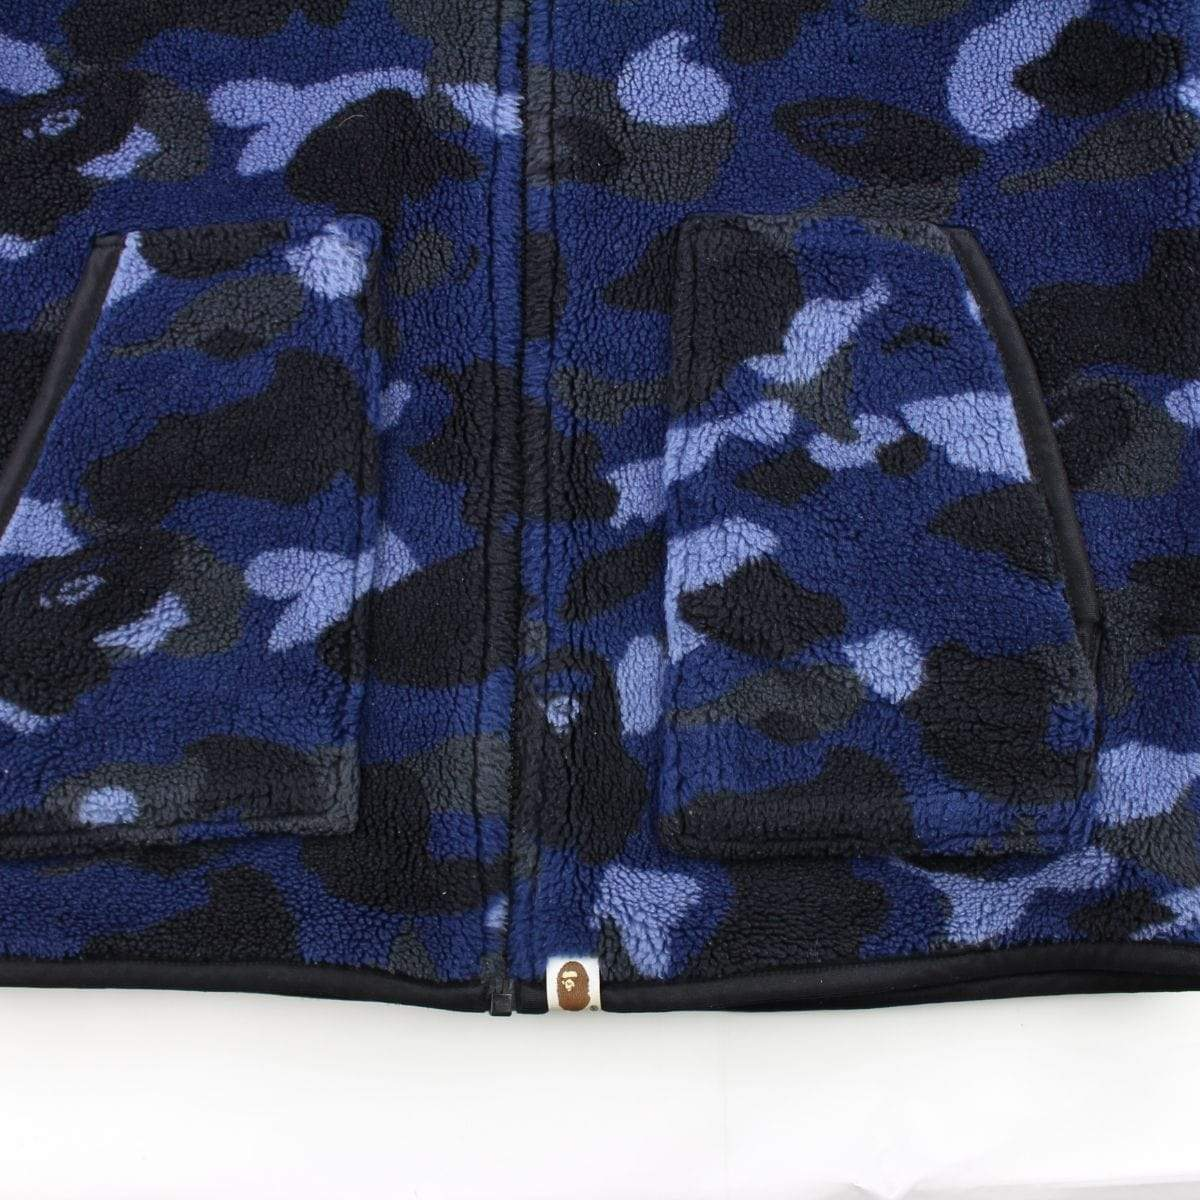 Bape Blue Camo Reversible Fleece Jacket - SaruGeneral